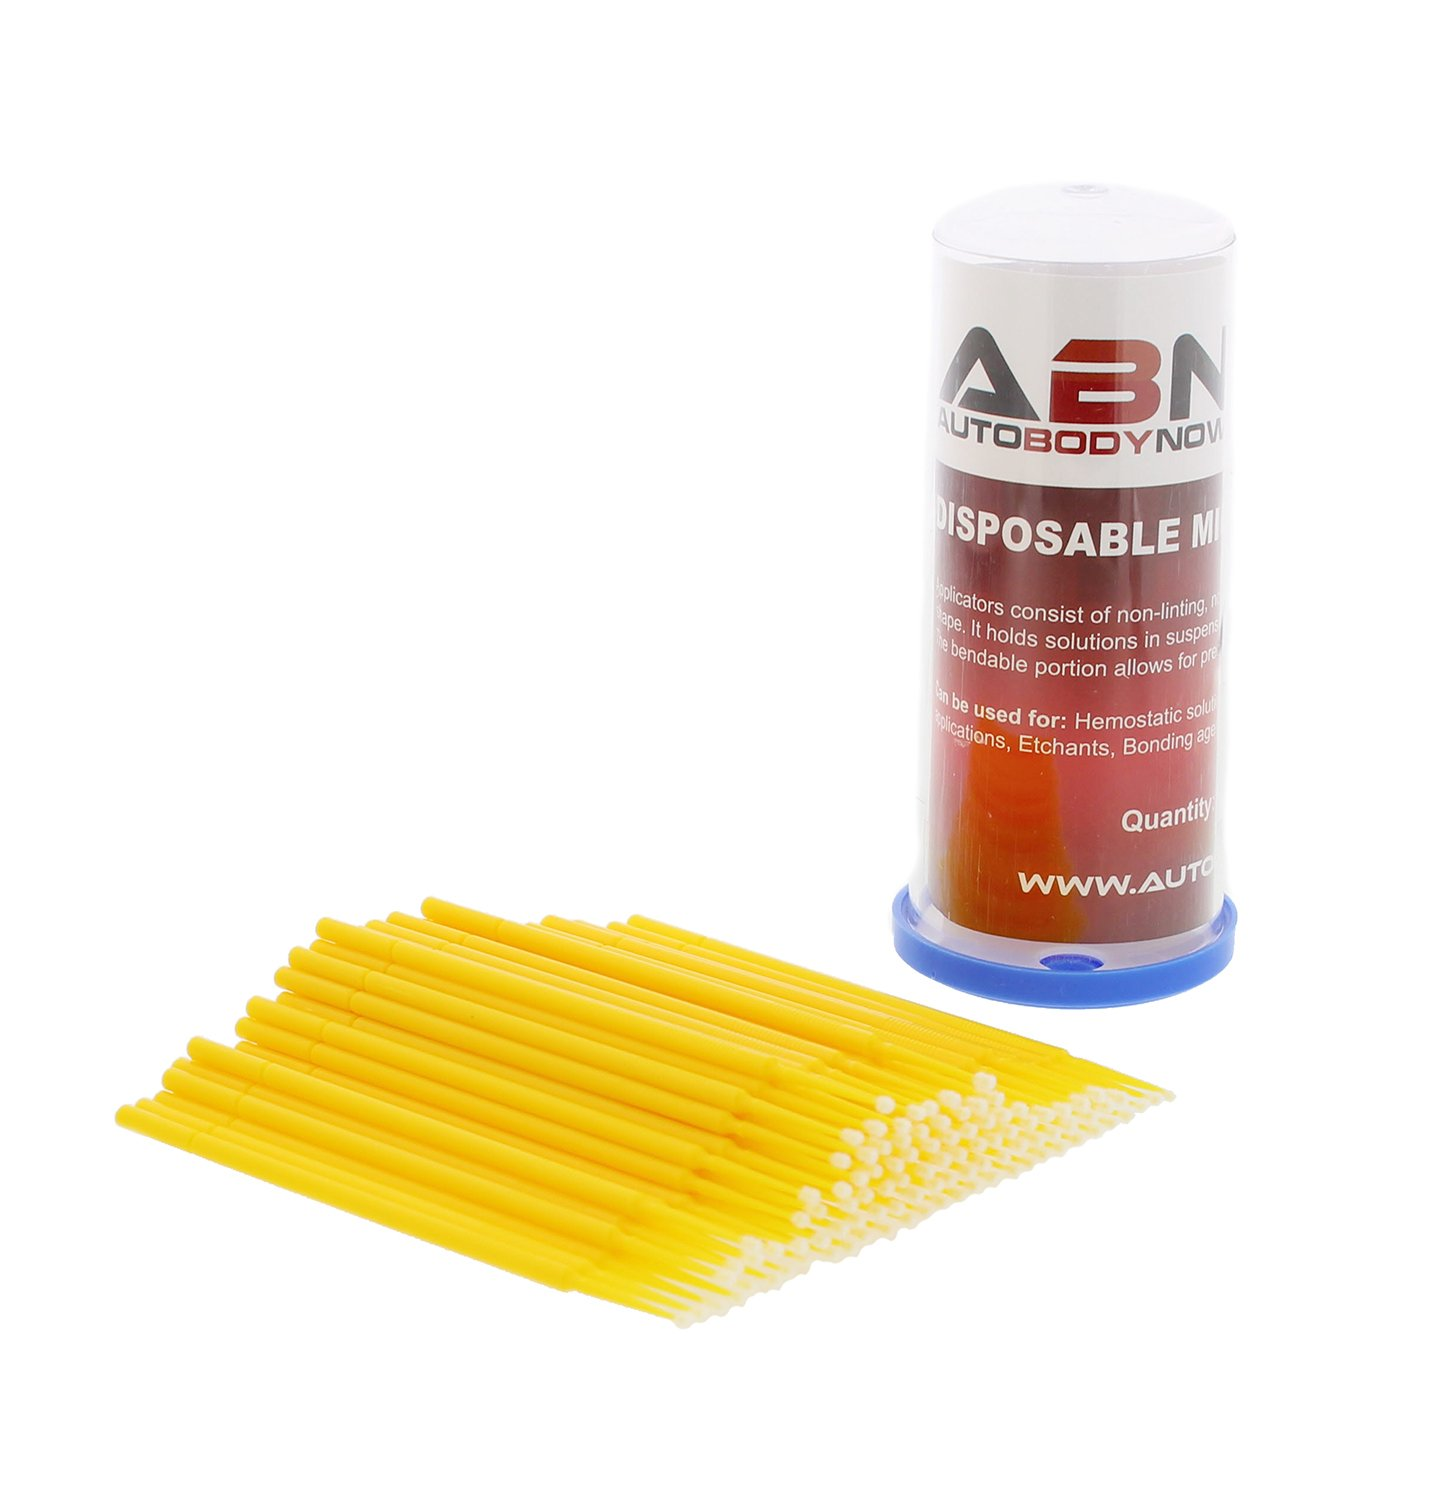 ABN Fine-Point Disposable Brush Applicator 100 Pack – for Lint-Free Detailing, Touchups, and More ABN4153